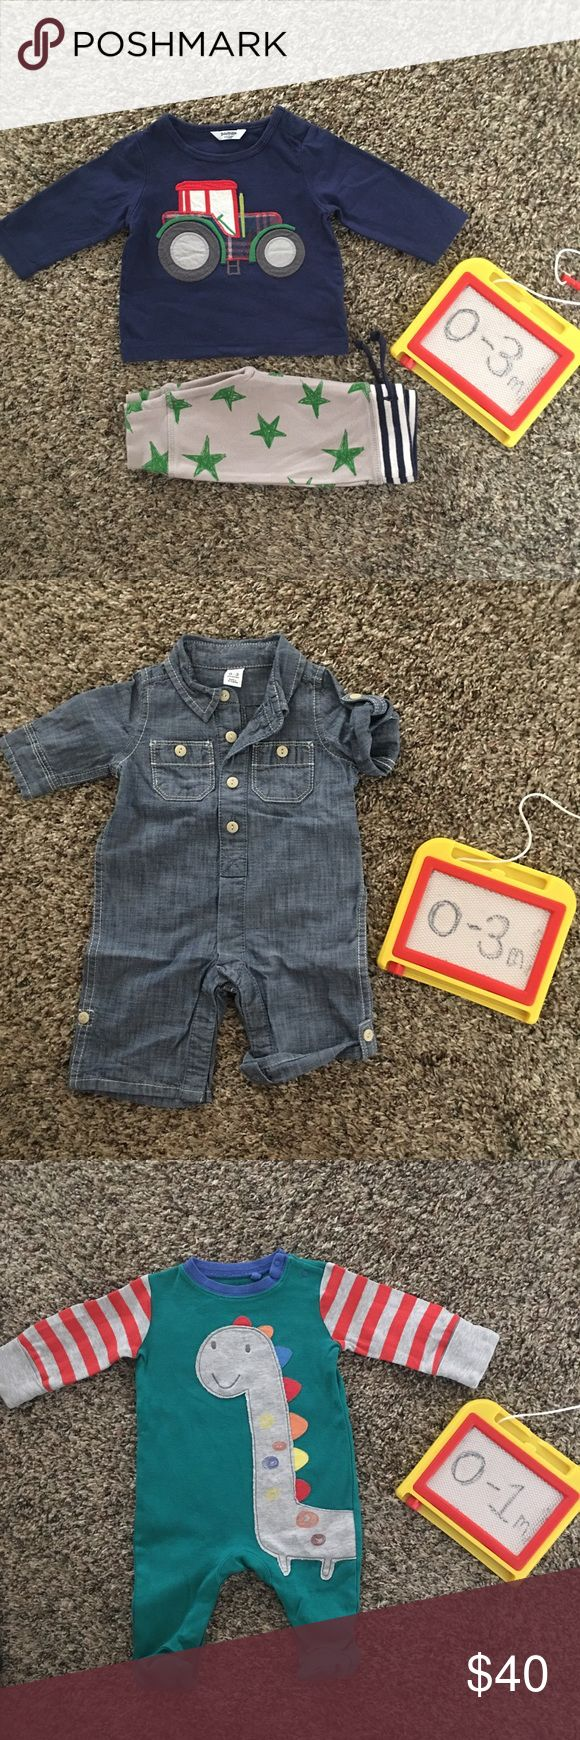 Baby BOY Bundle 0-3mo Gap Boden Next Direct UK All pieces are in great shape! First set is Baby Boden, second denim romper is baby Gap and the sleeper is next direct from UK. All are in great shape only worn a few times. Baby Boden Matching Sets